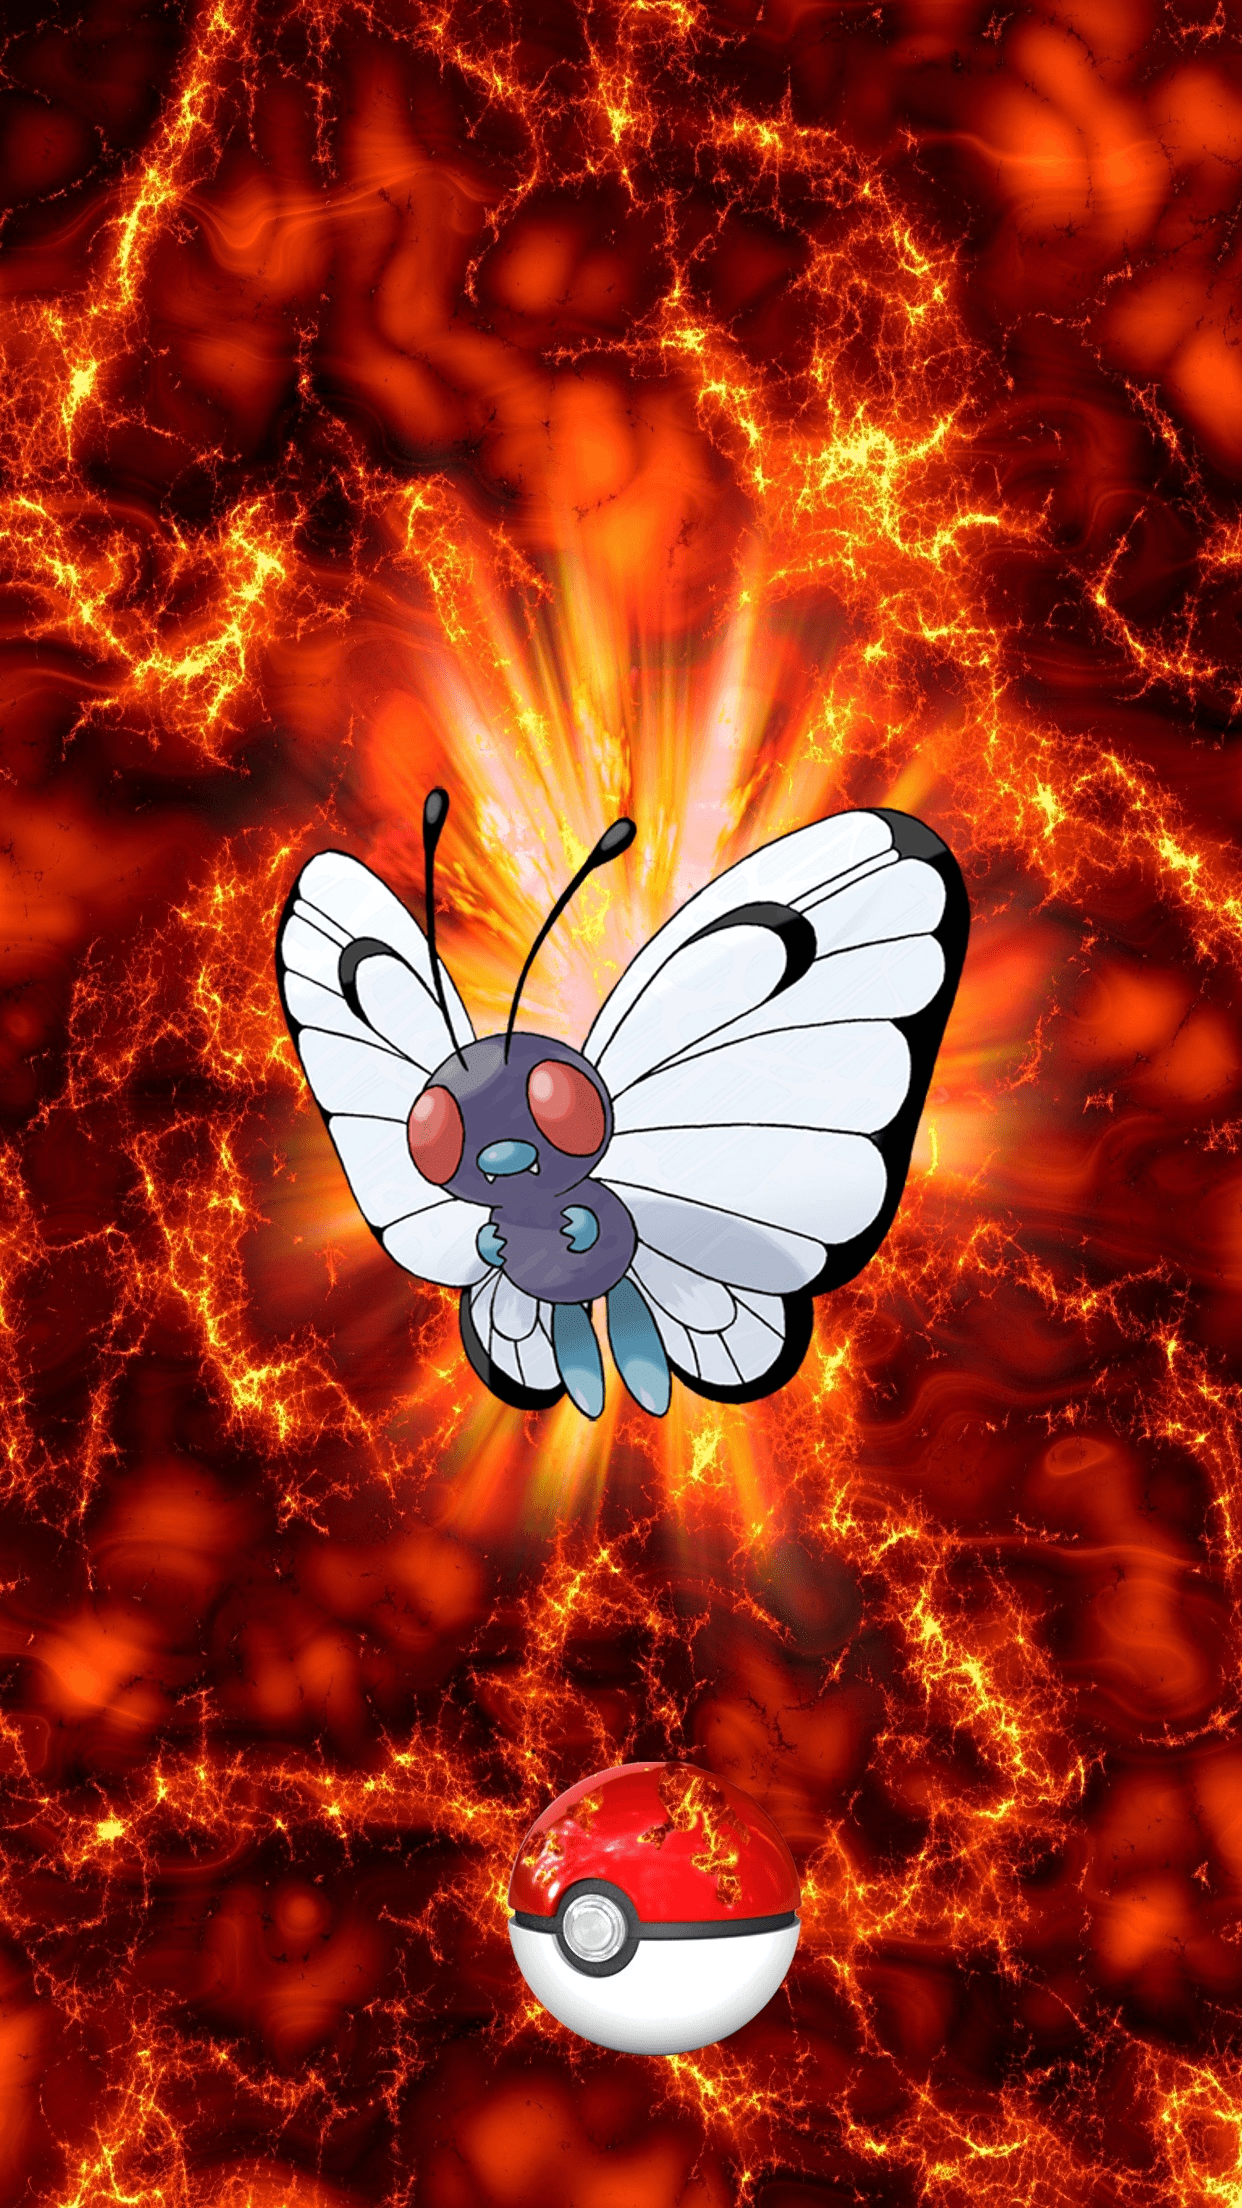 012 Fire Pokeball Butterfree Butterfree Metapod | Wallpaper